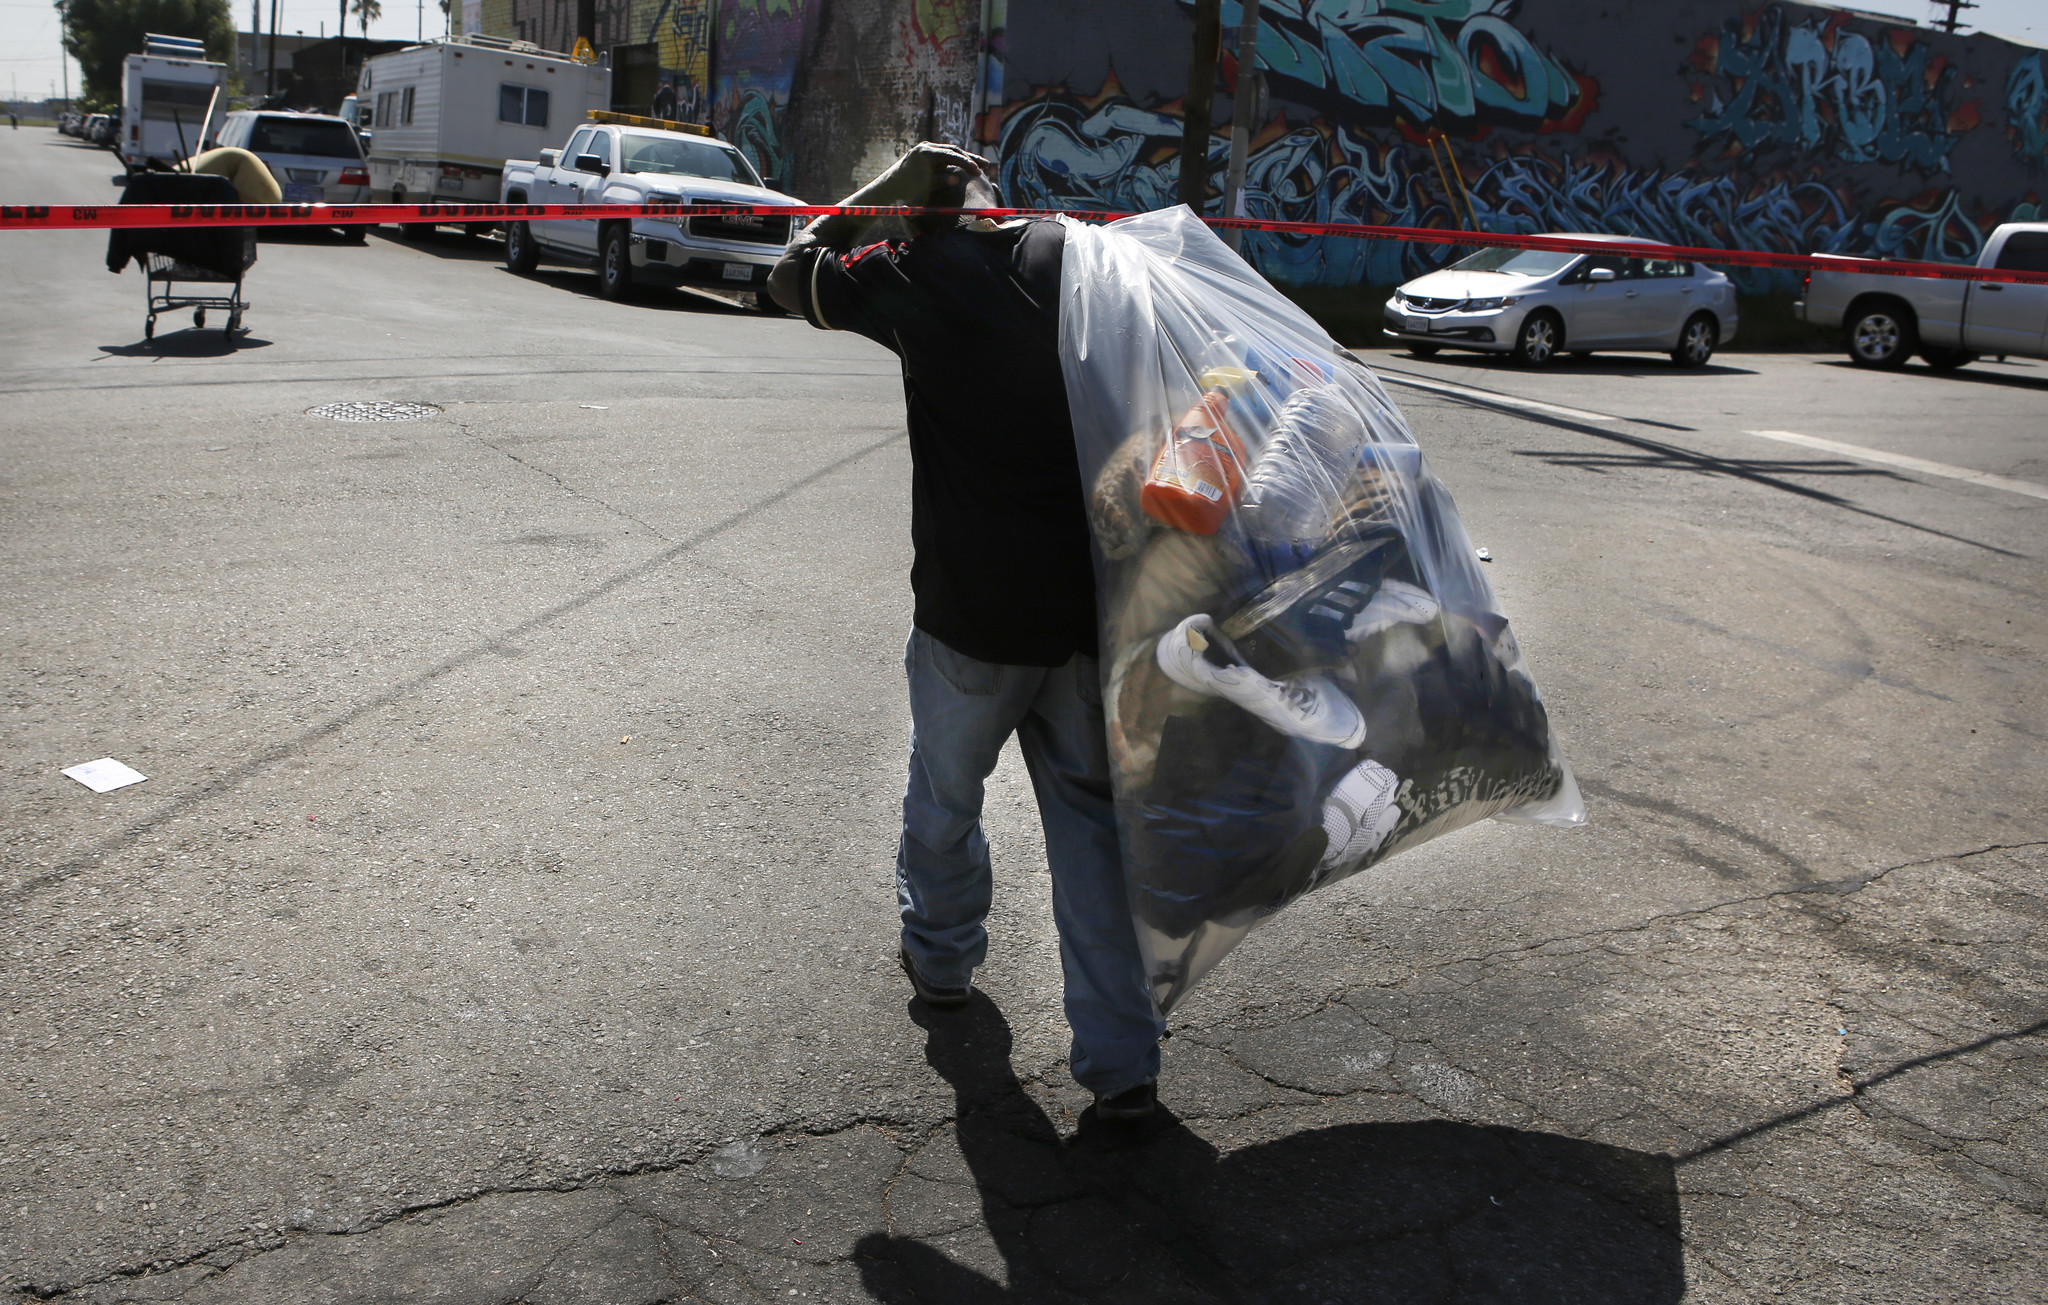 A homeless man leaves an encampment area with his belongings in a bag.